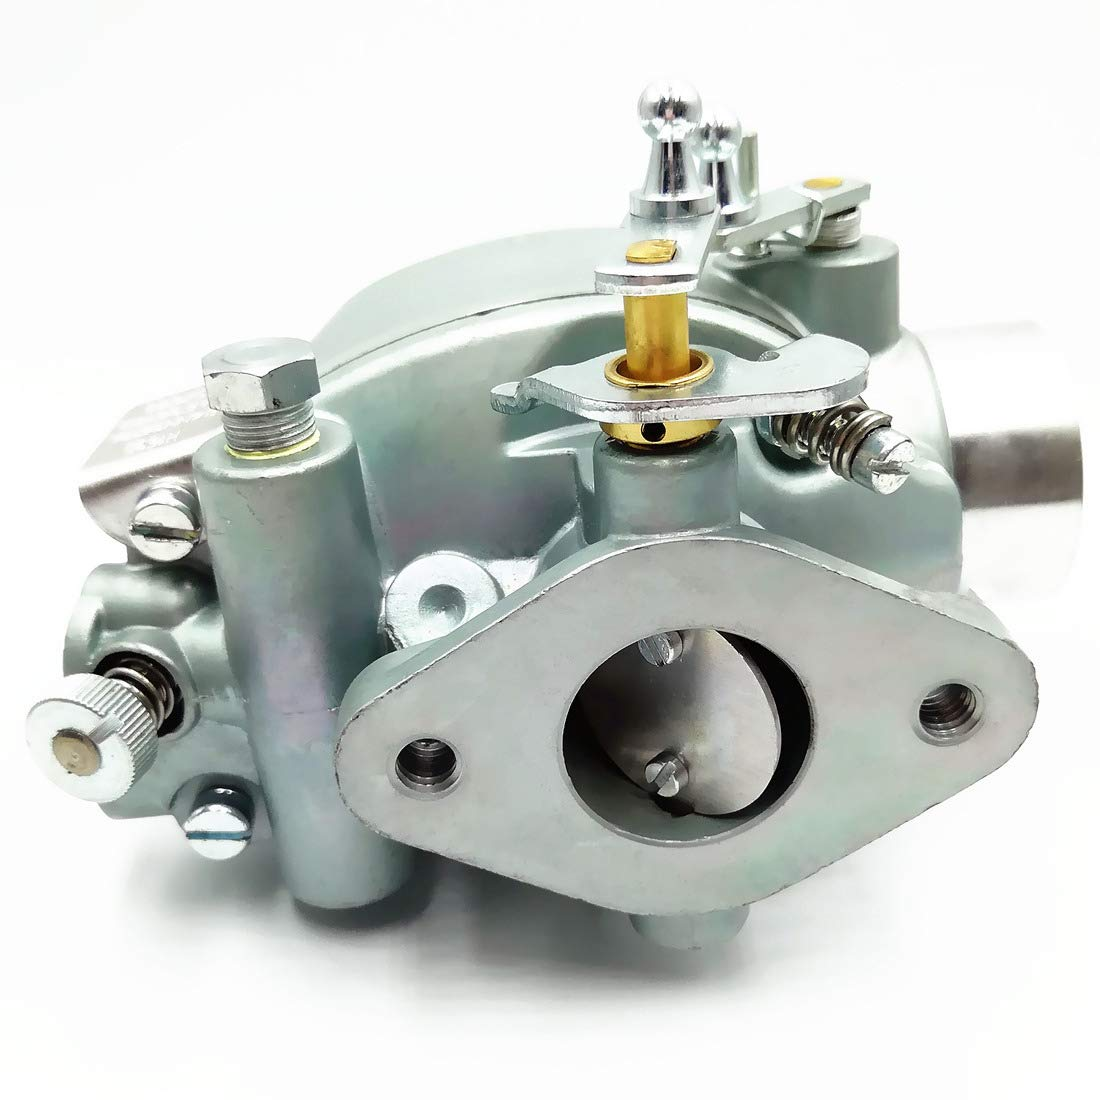 RepairWill EAE9510C Carburetor for Ford Jubilee NAA Nab Tractor Marvel Schebler TSX428 Replace B2NN9510A